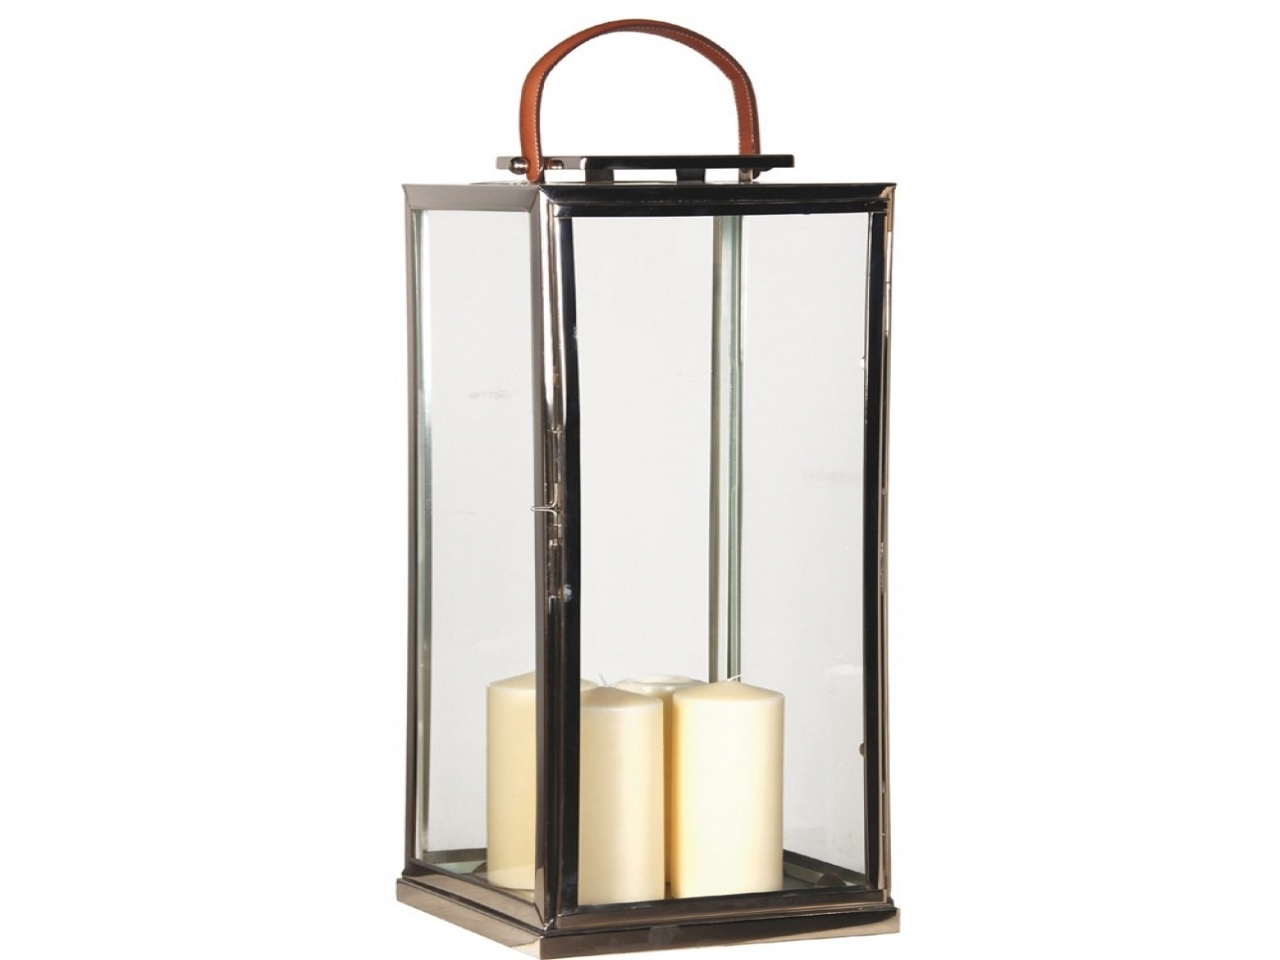 Corner Bookcases For Sale, Large Outdoor Hurricane Lanterns Outdoor With Regard To Outdoor Storm Lanterns (View 6 of 20)